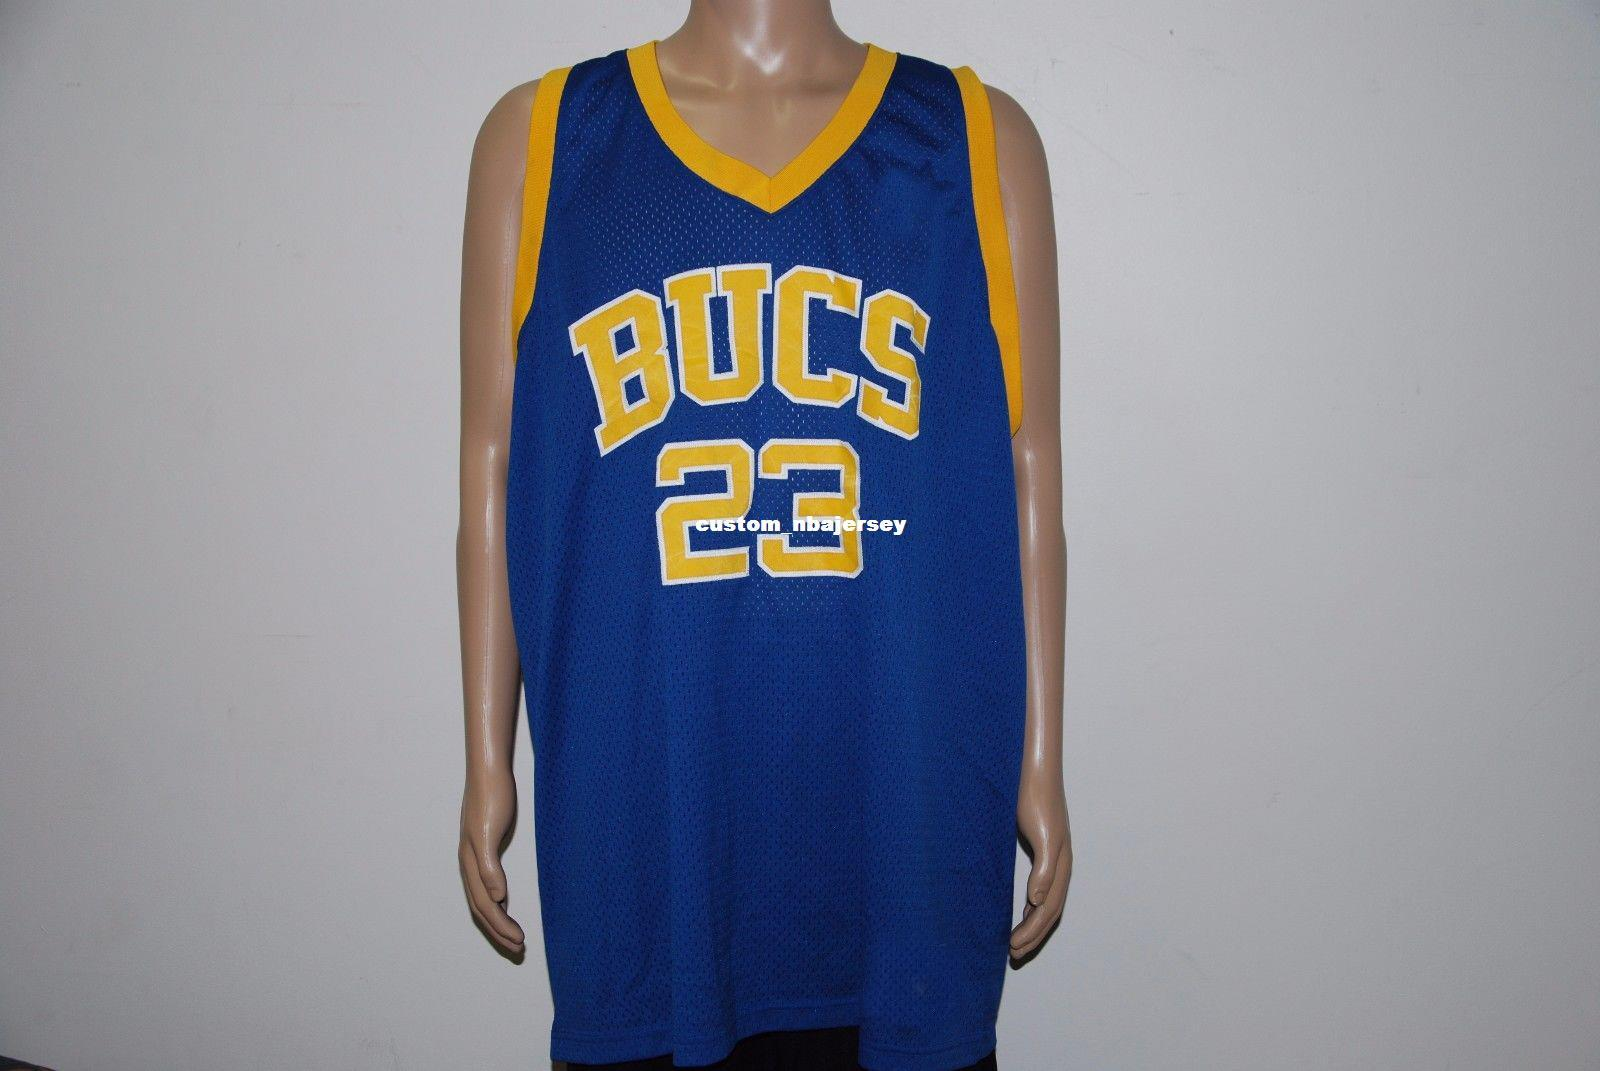 6c250567d6d095 2019 Cheap Custom 1980 Michael Jersey Laney High School Bucs Stitched  Customize Any Number Name MEN WOMEN YOUTH XS 5XL From Custom nbajersey